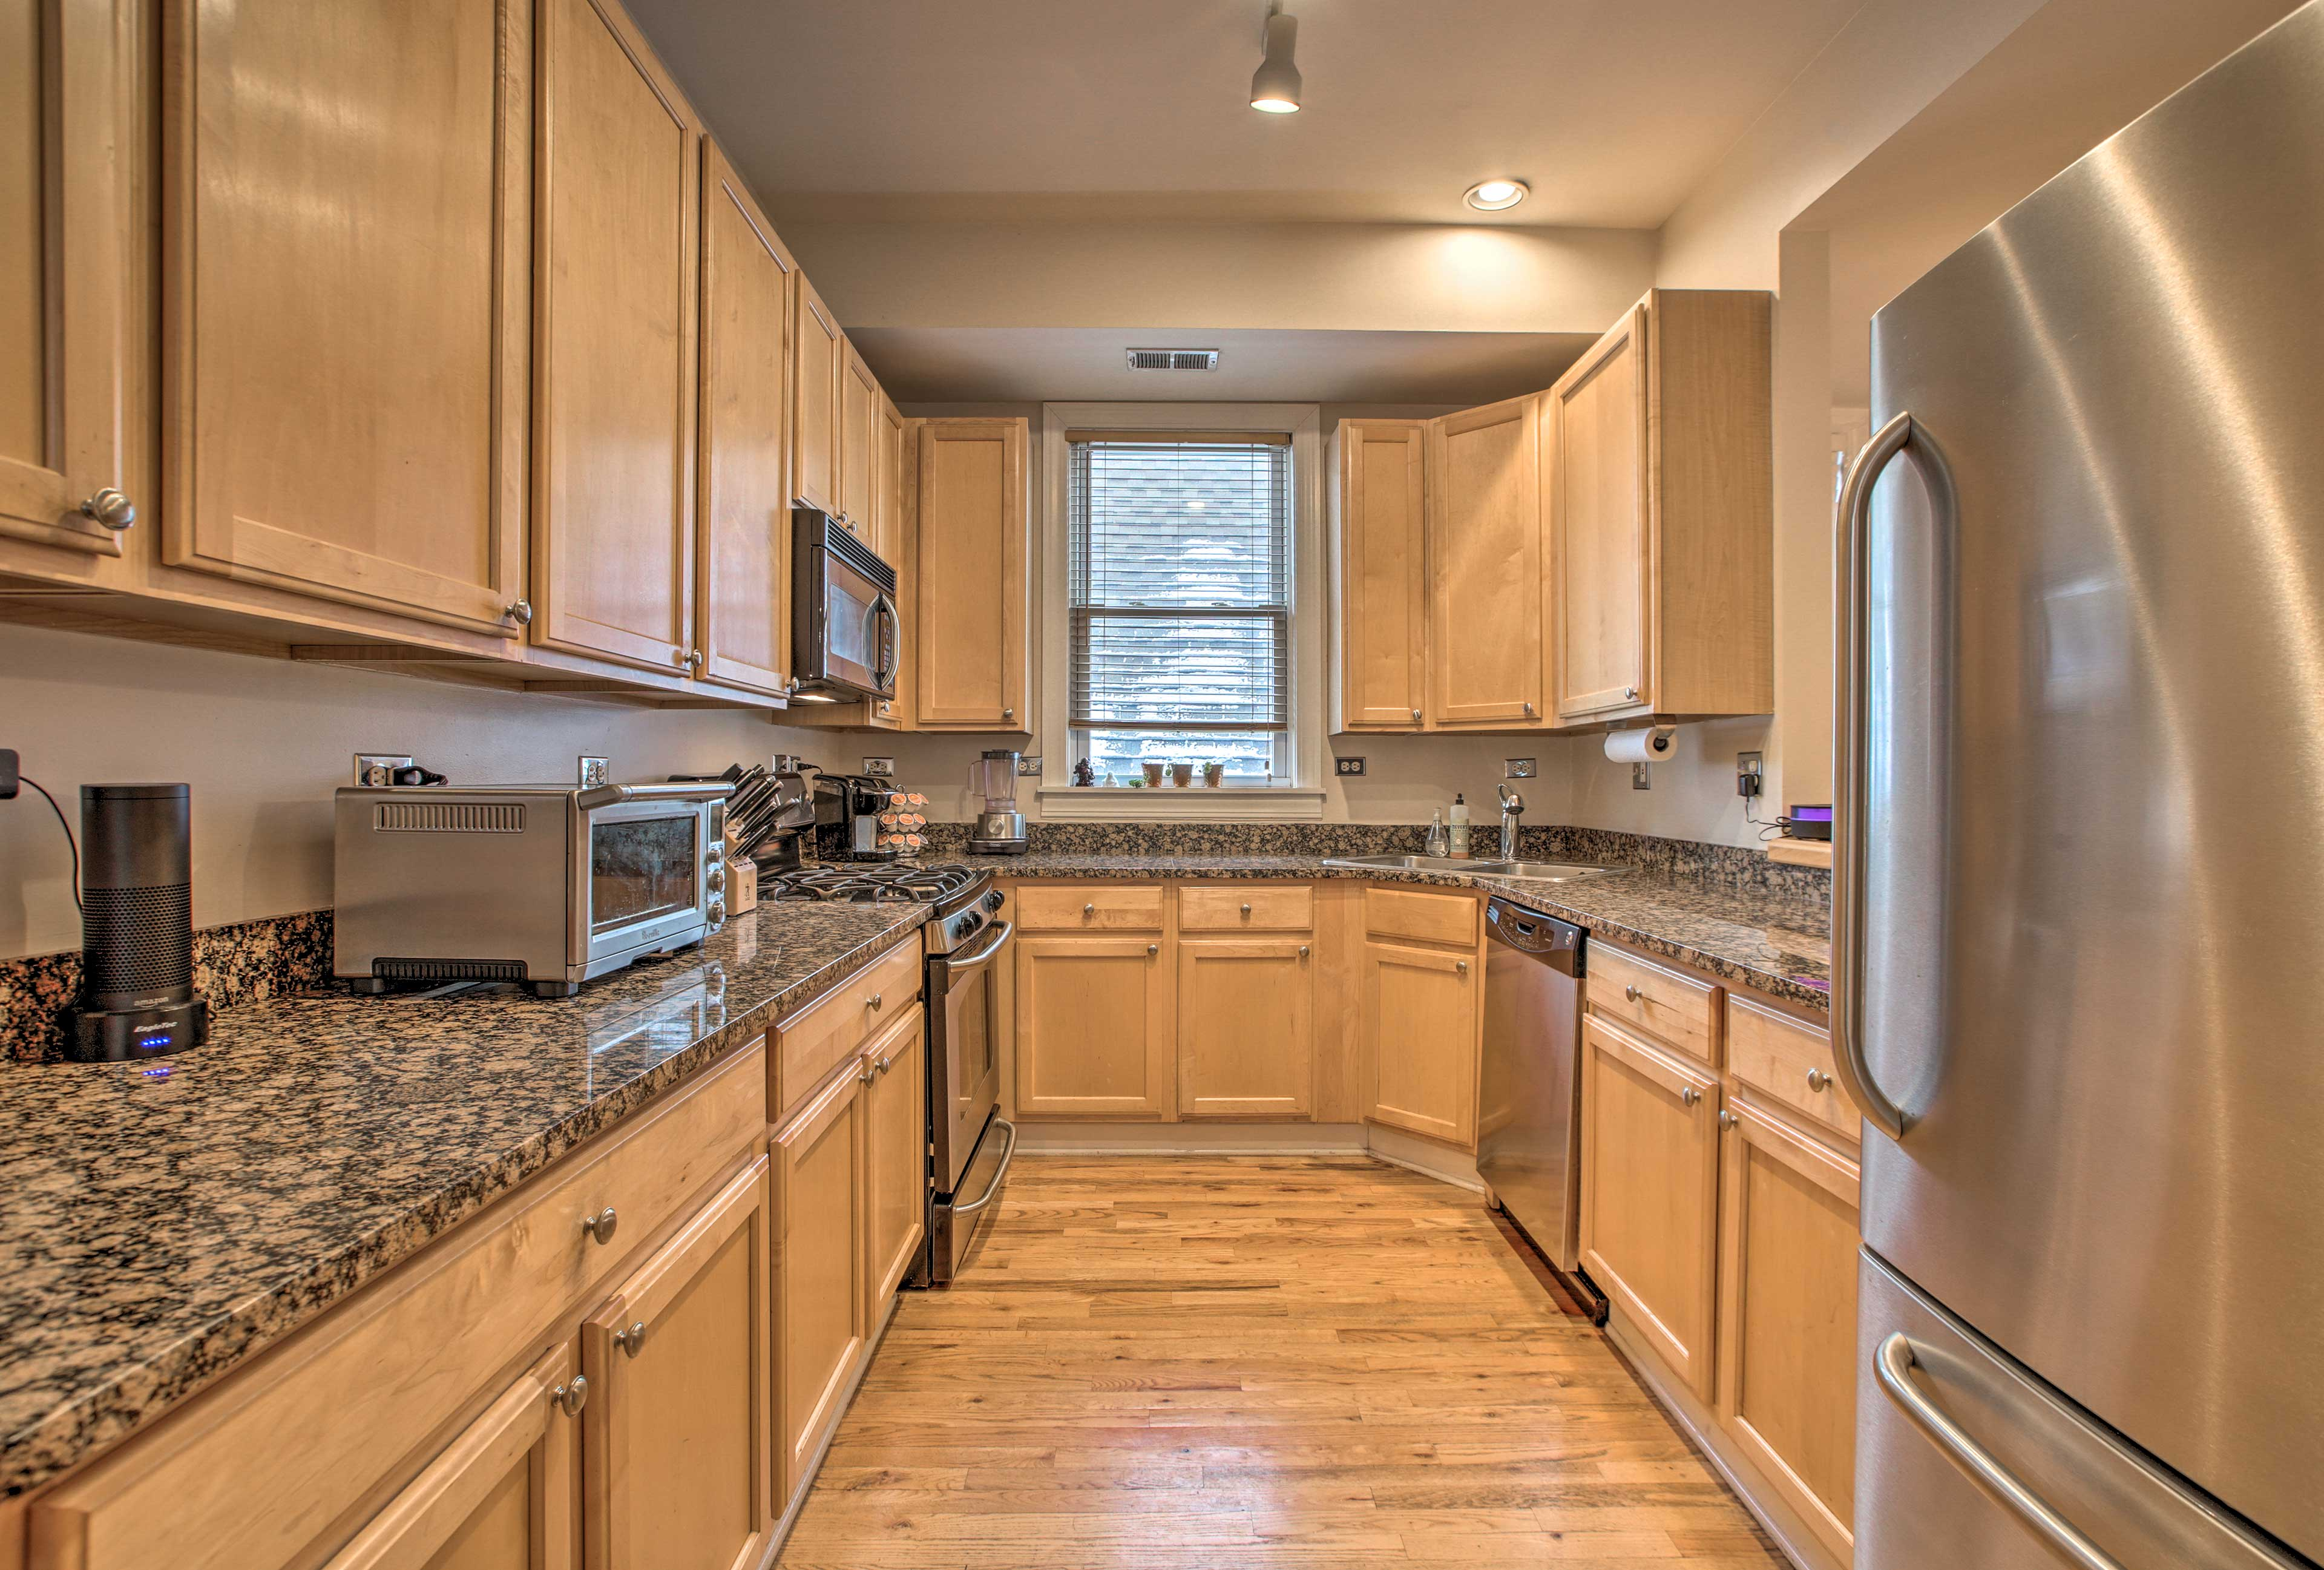 The large kitchen is newly updated & fully equipped!